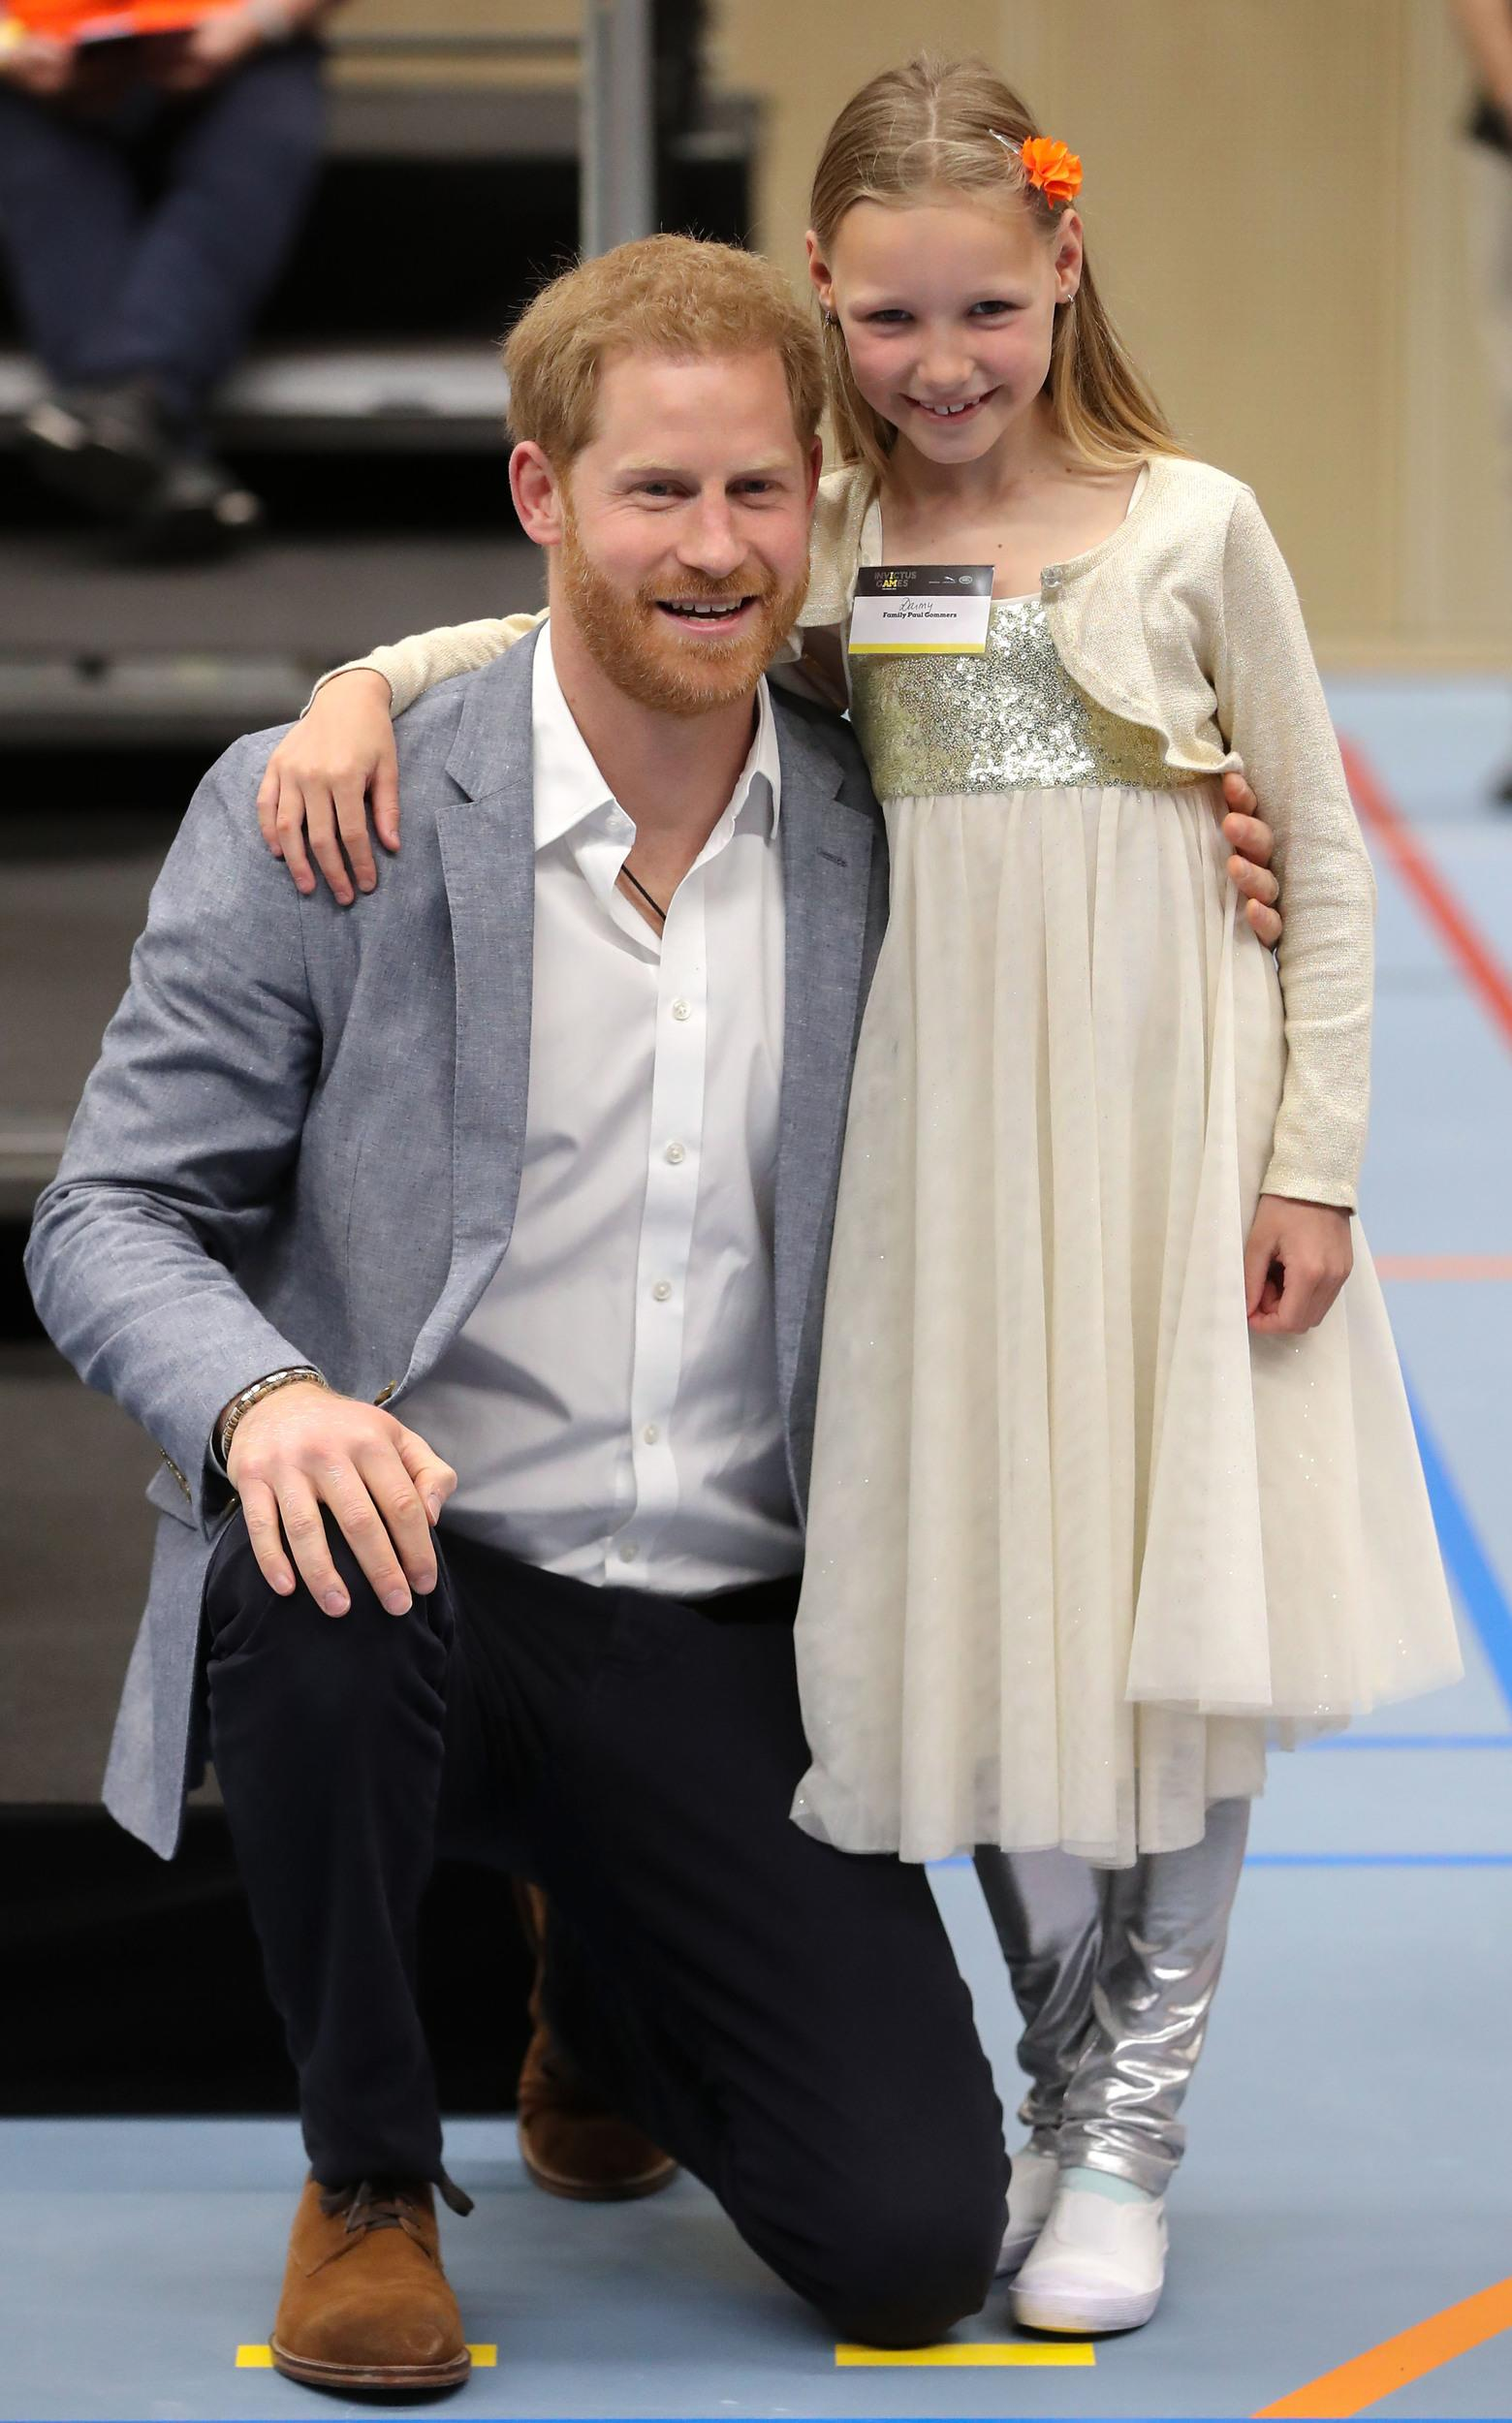 THE HAGUE, NETHERLANDS - MAY 09: Prince Harry, Duke of Sussex poses with a competitors family member at a sports training session at Sportcampus Zuiderpark during a visit to The Hague as part of a programme of events to mark the official launch of the Invictus Games. HRH will spend time meeting potential competitors and their families, joining the Netherlands in celebrating what an exciting event The Hague 2020 will be. Prince Harry, Duke of Sussex founded the games in 2014 in which wounded veterans compete in an array of sporting events on May 09, 2019 in The Hague, Netherlands.  (Photo by Chris Jackson Pool/Getty Images)